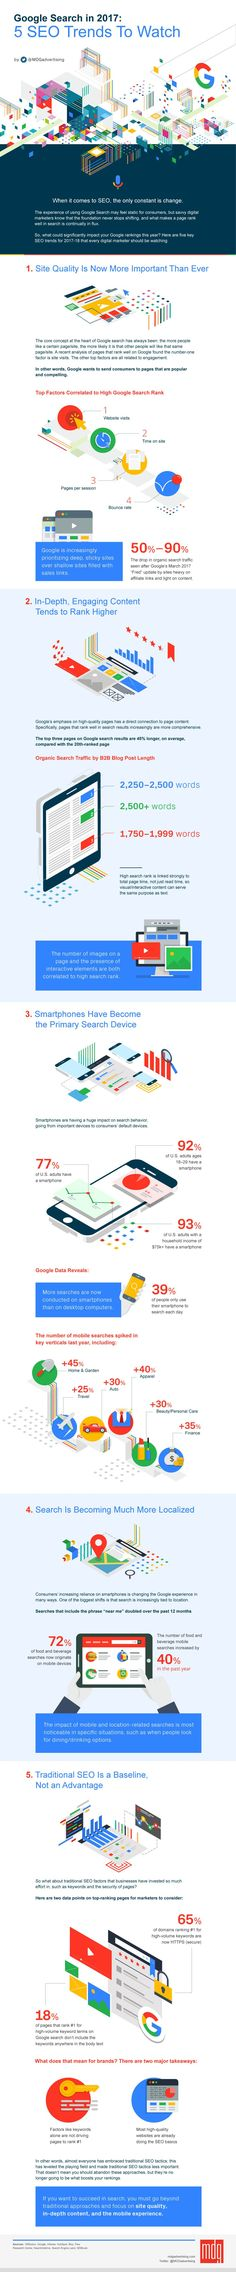 Google Search in 2017-2018: 5 #SEO Trends to Watch #Infographic